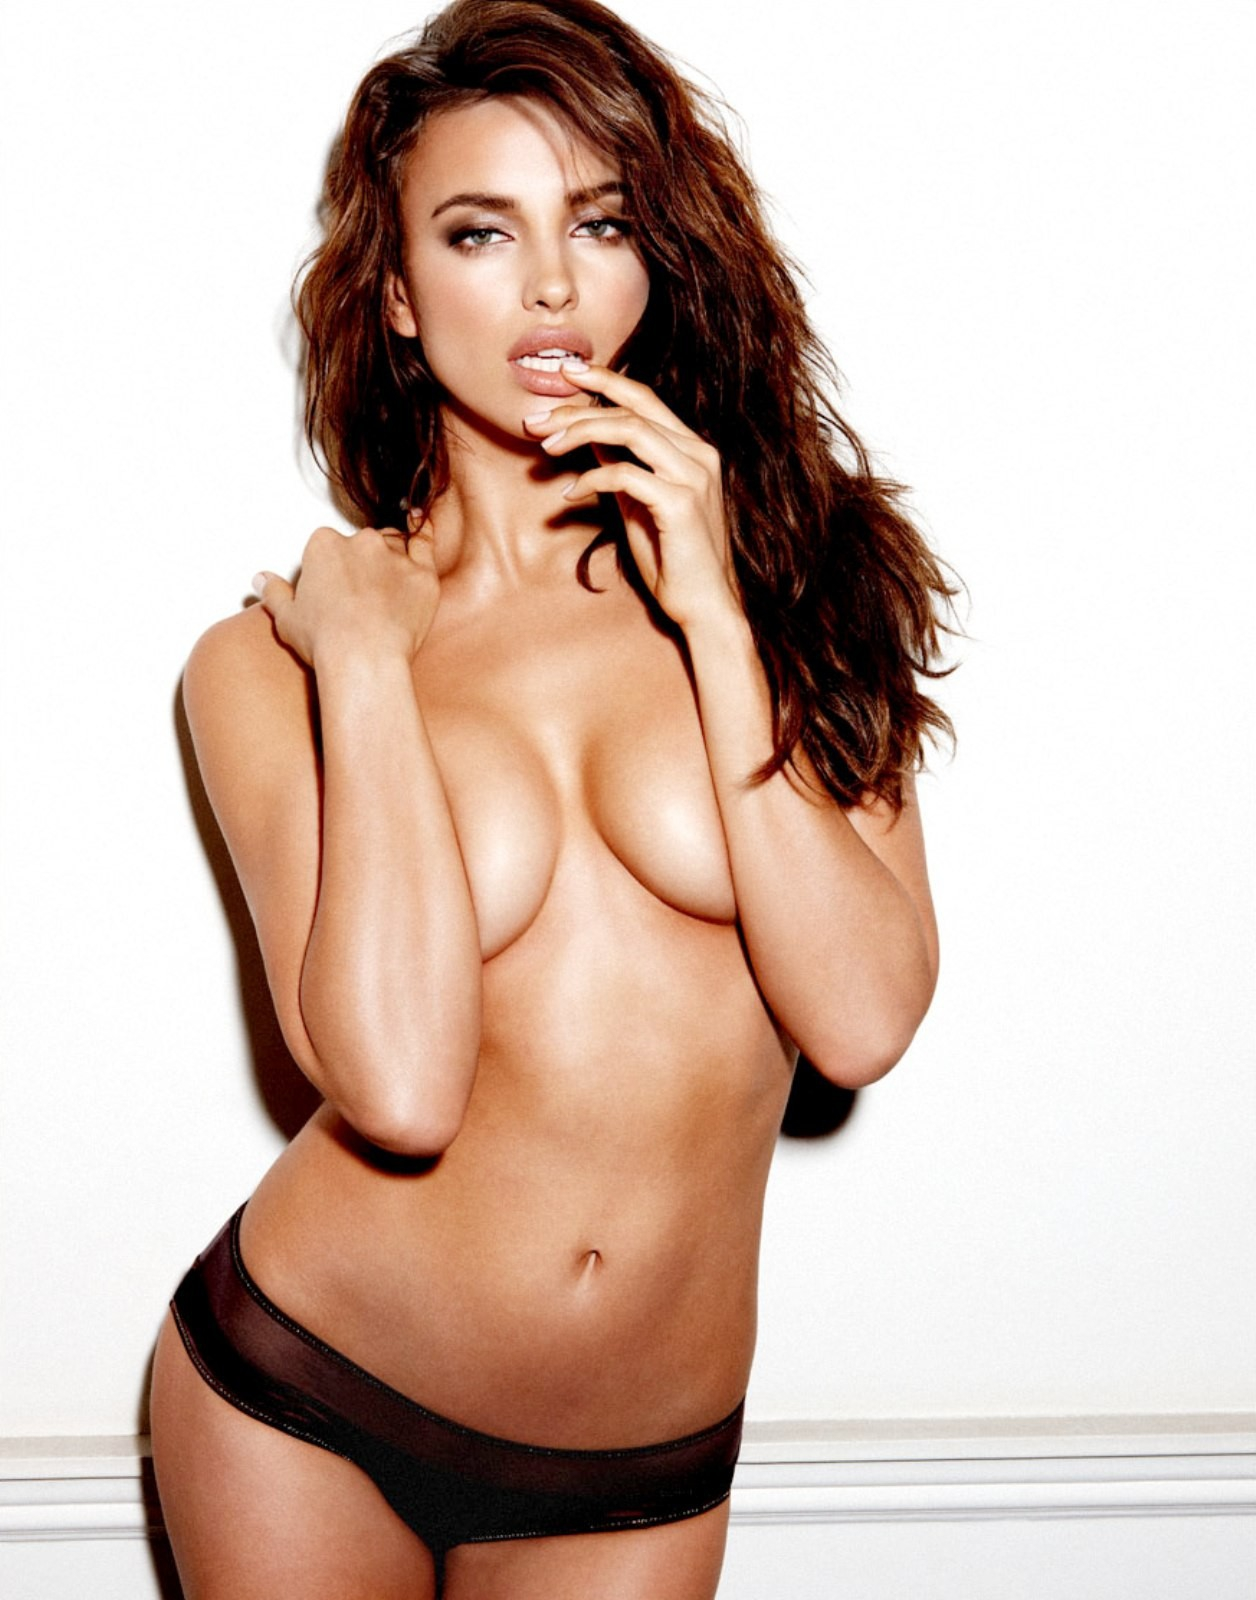 Babe Of The Day, Irina Shayk.